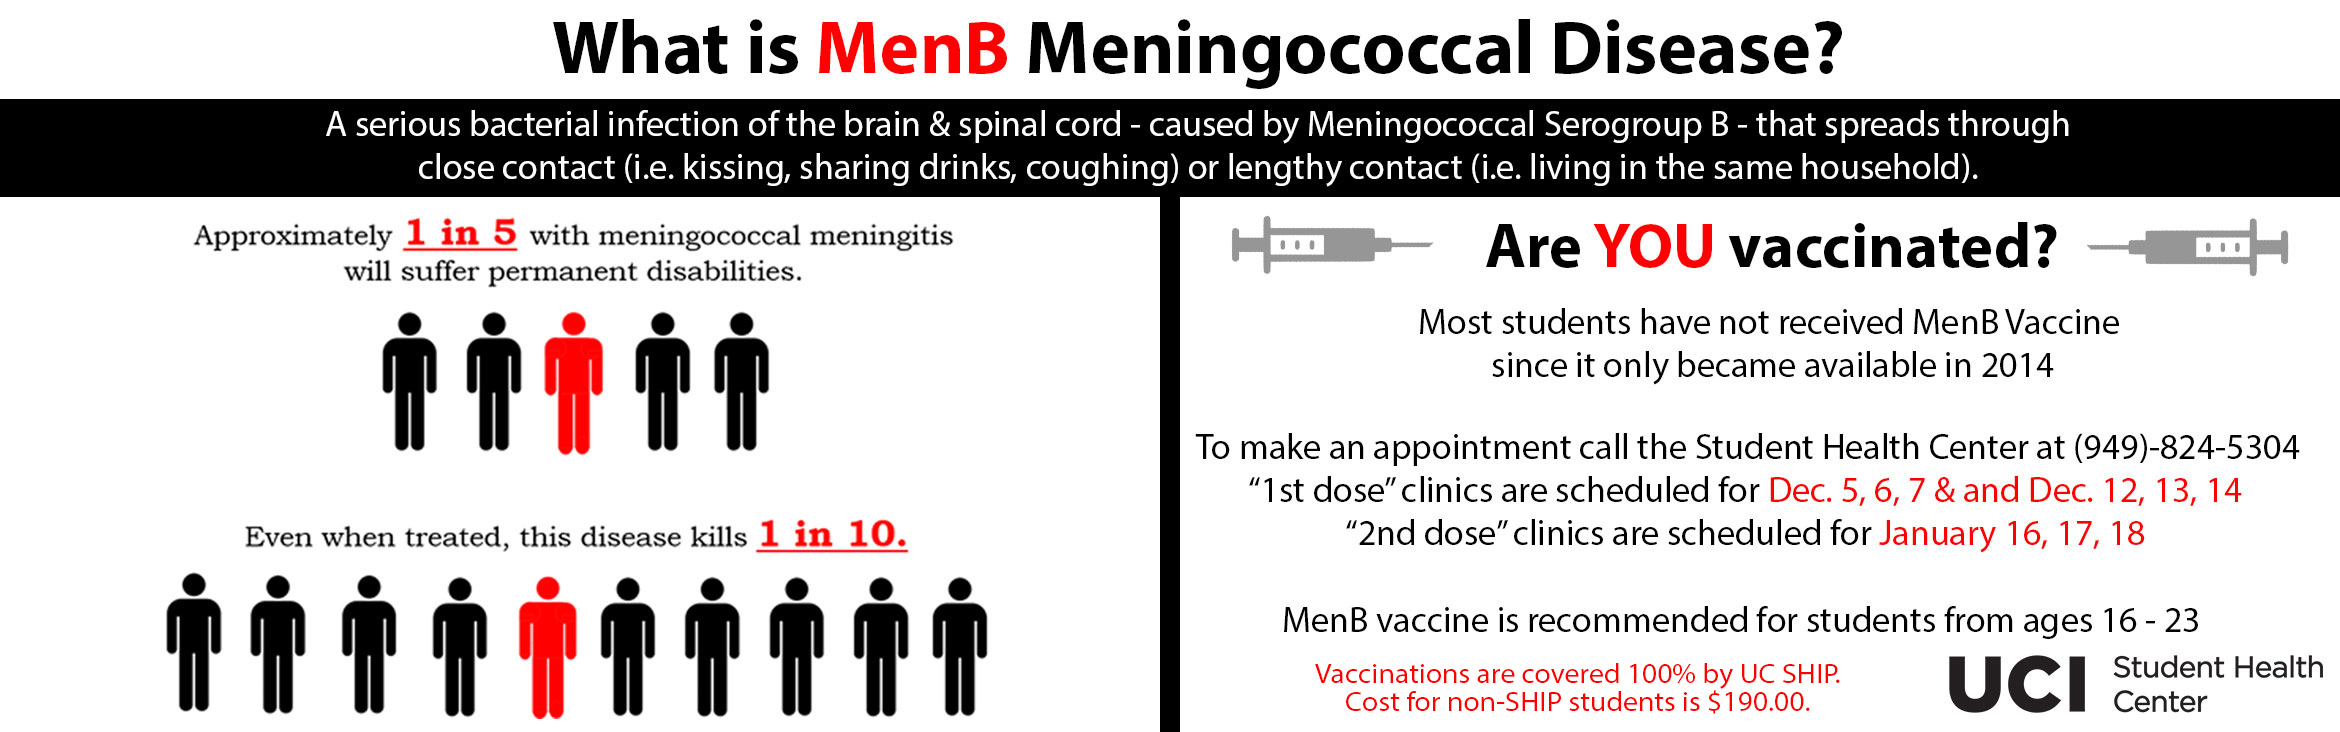 What is MenB Meningococcal Disease? A serious bacterial infection of the brain & spinal cord - caused by Meningococcal Serogroup B - that spreads through close contact (i.e. kissing, sharing drinks, coughing) or lengthy contact